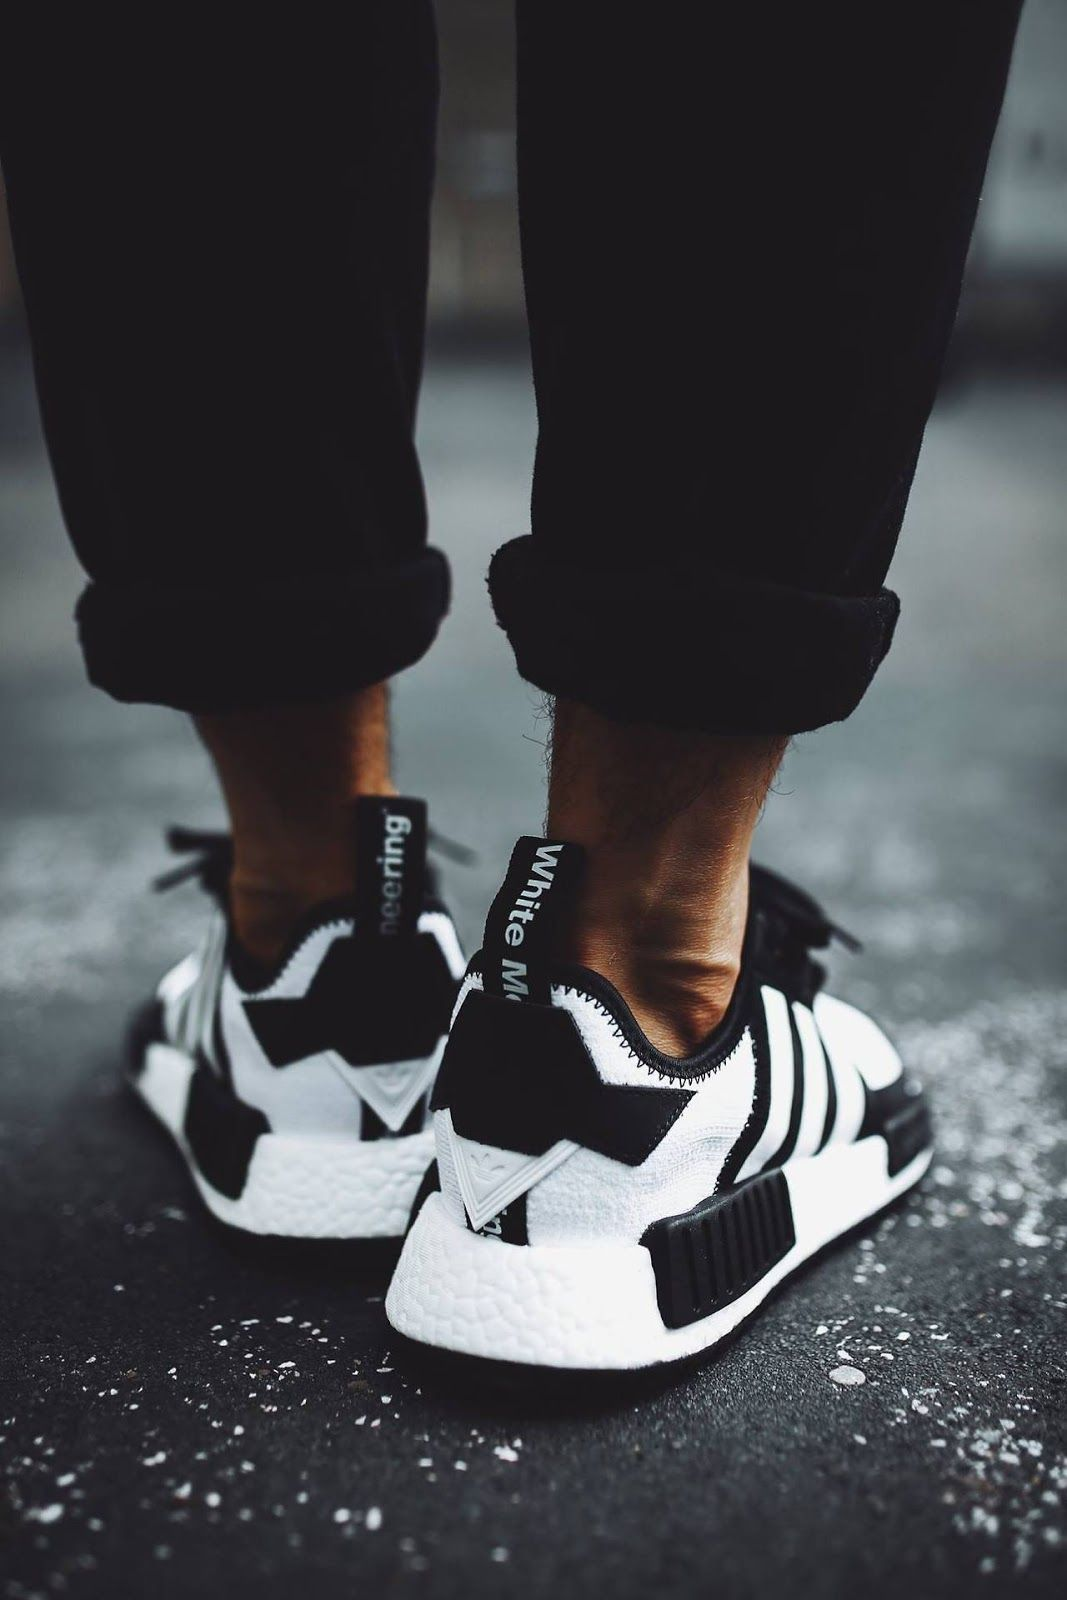 verano Explosivos curva  Adidas by White Mountaineering NMD Trail Primeknit Boost / CG3646. |  Addidas shoes, Sneakers men fashion, Sneakers men